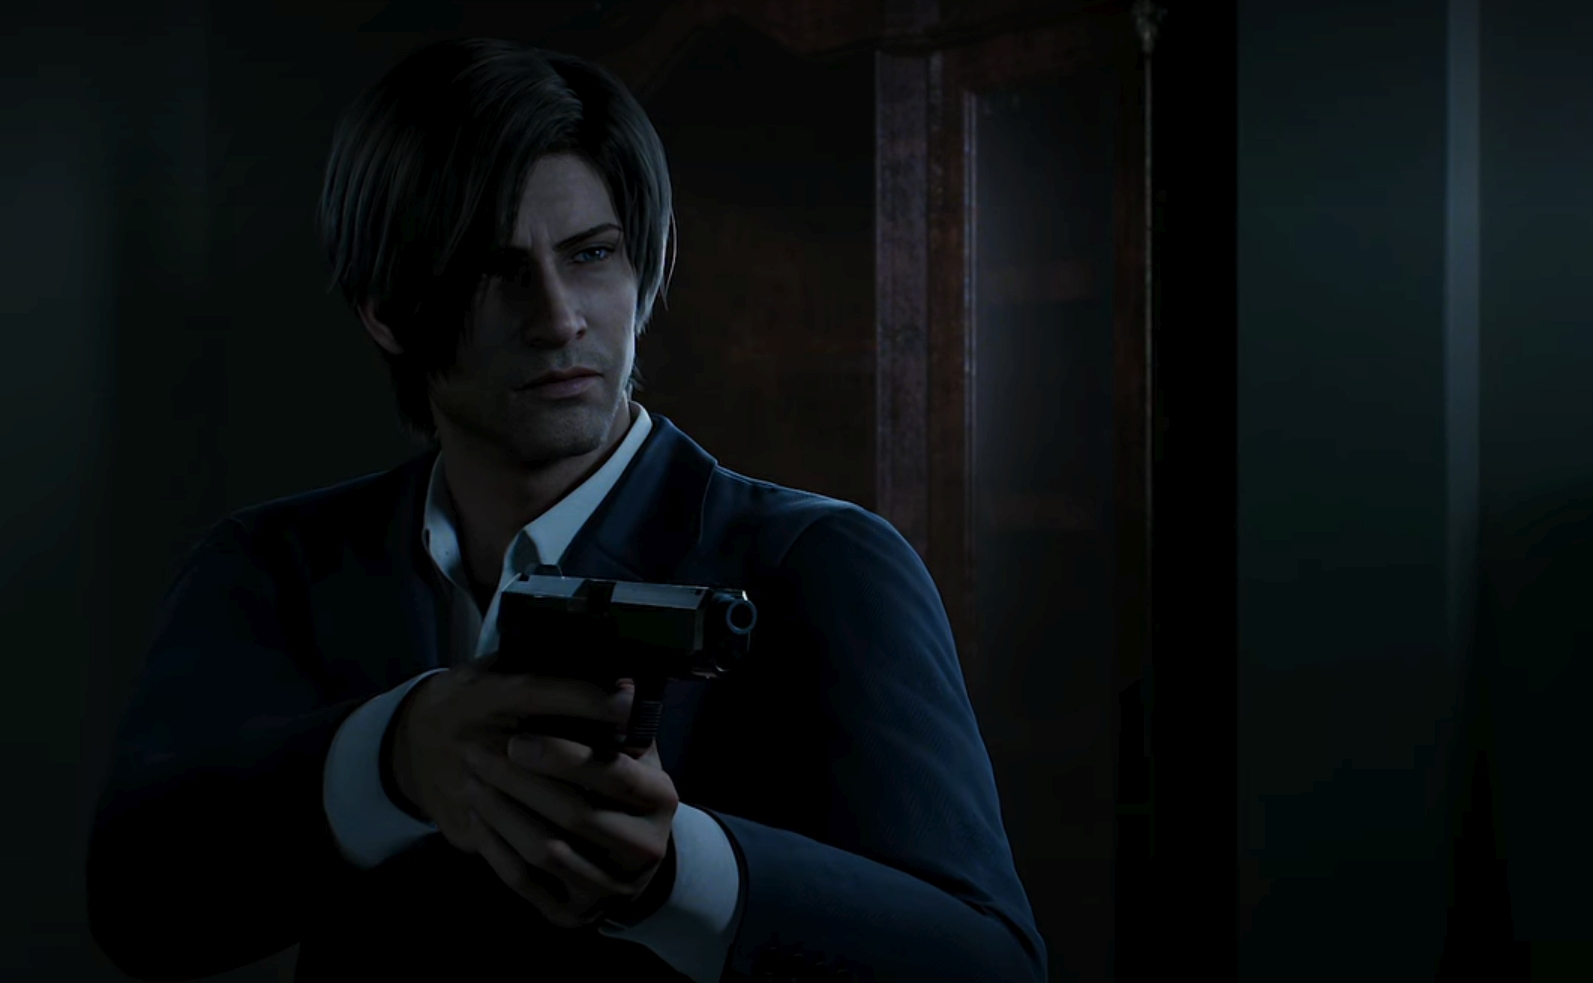 Resident Evil: Infinite Darkness CG Series Starring Leon And Claire Coming To Netflix